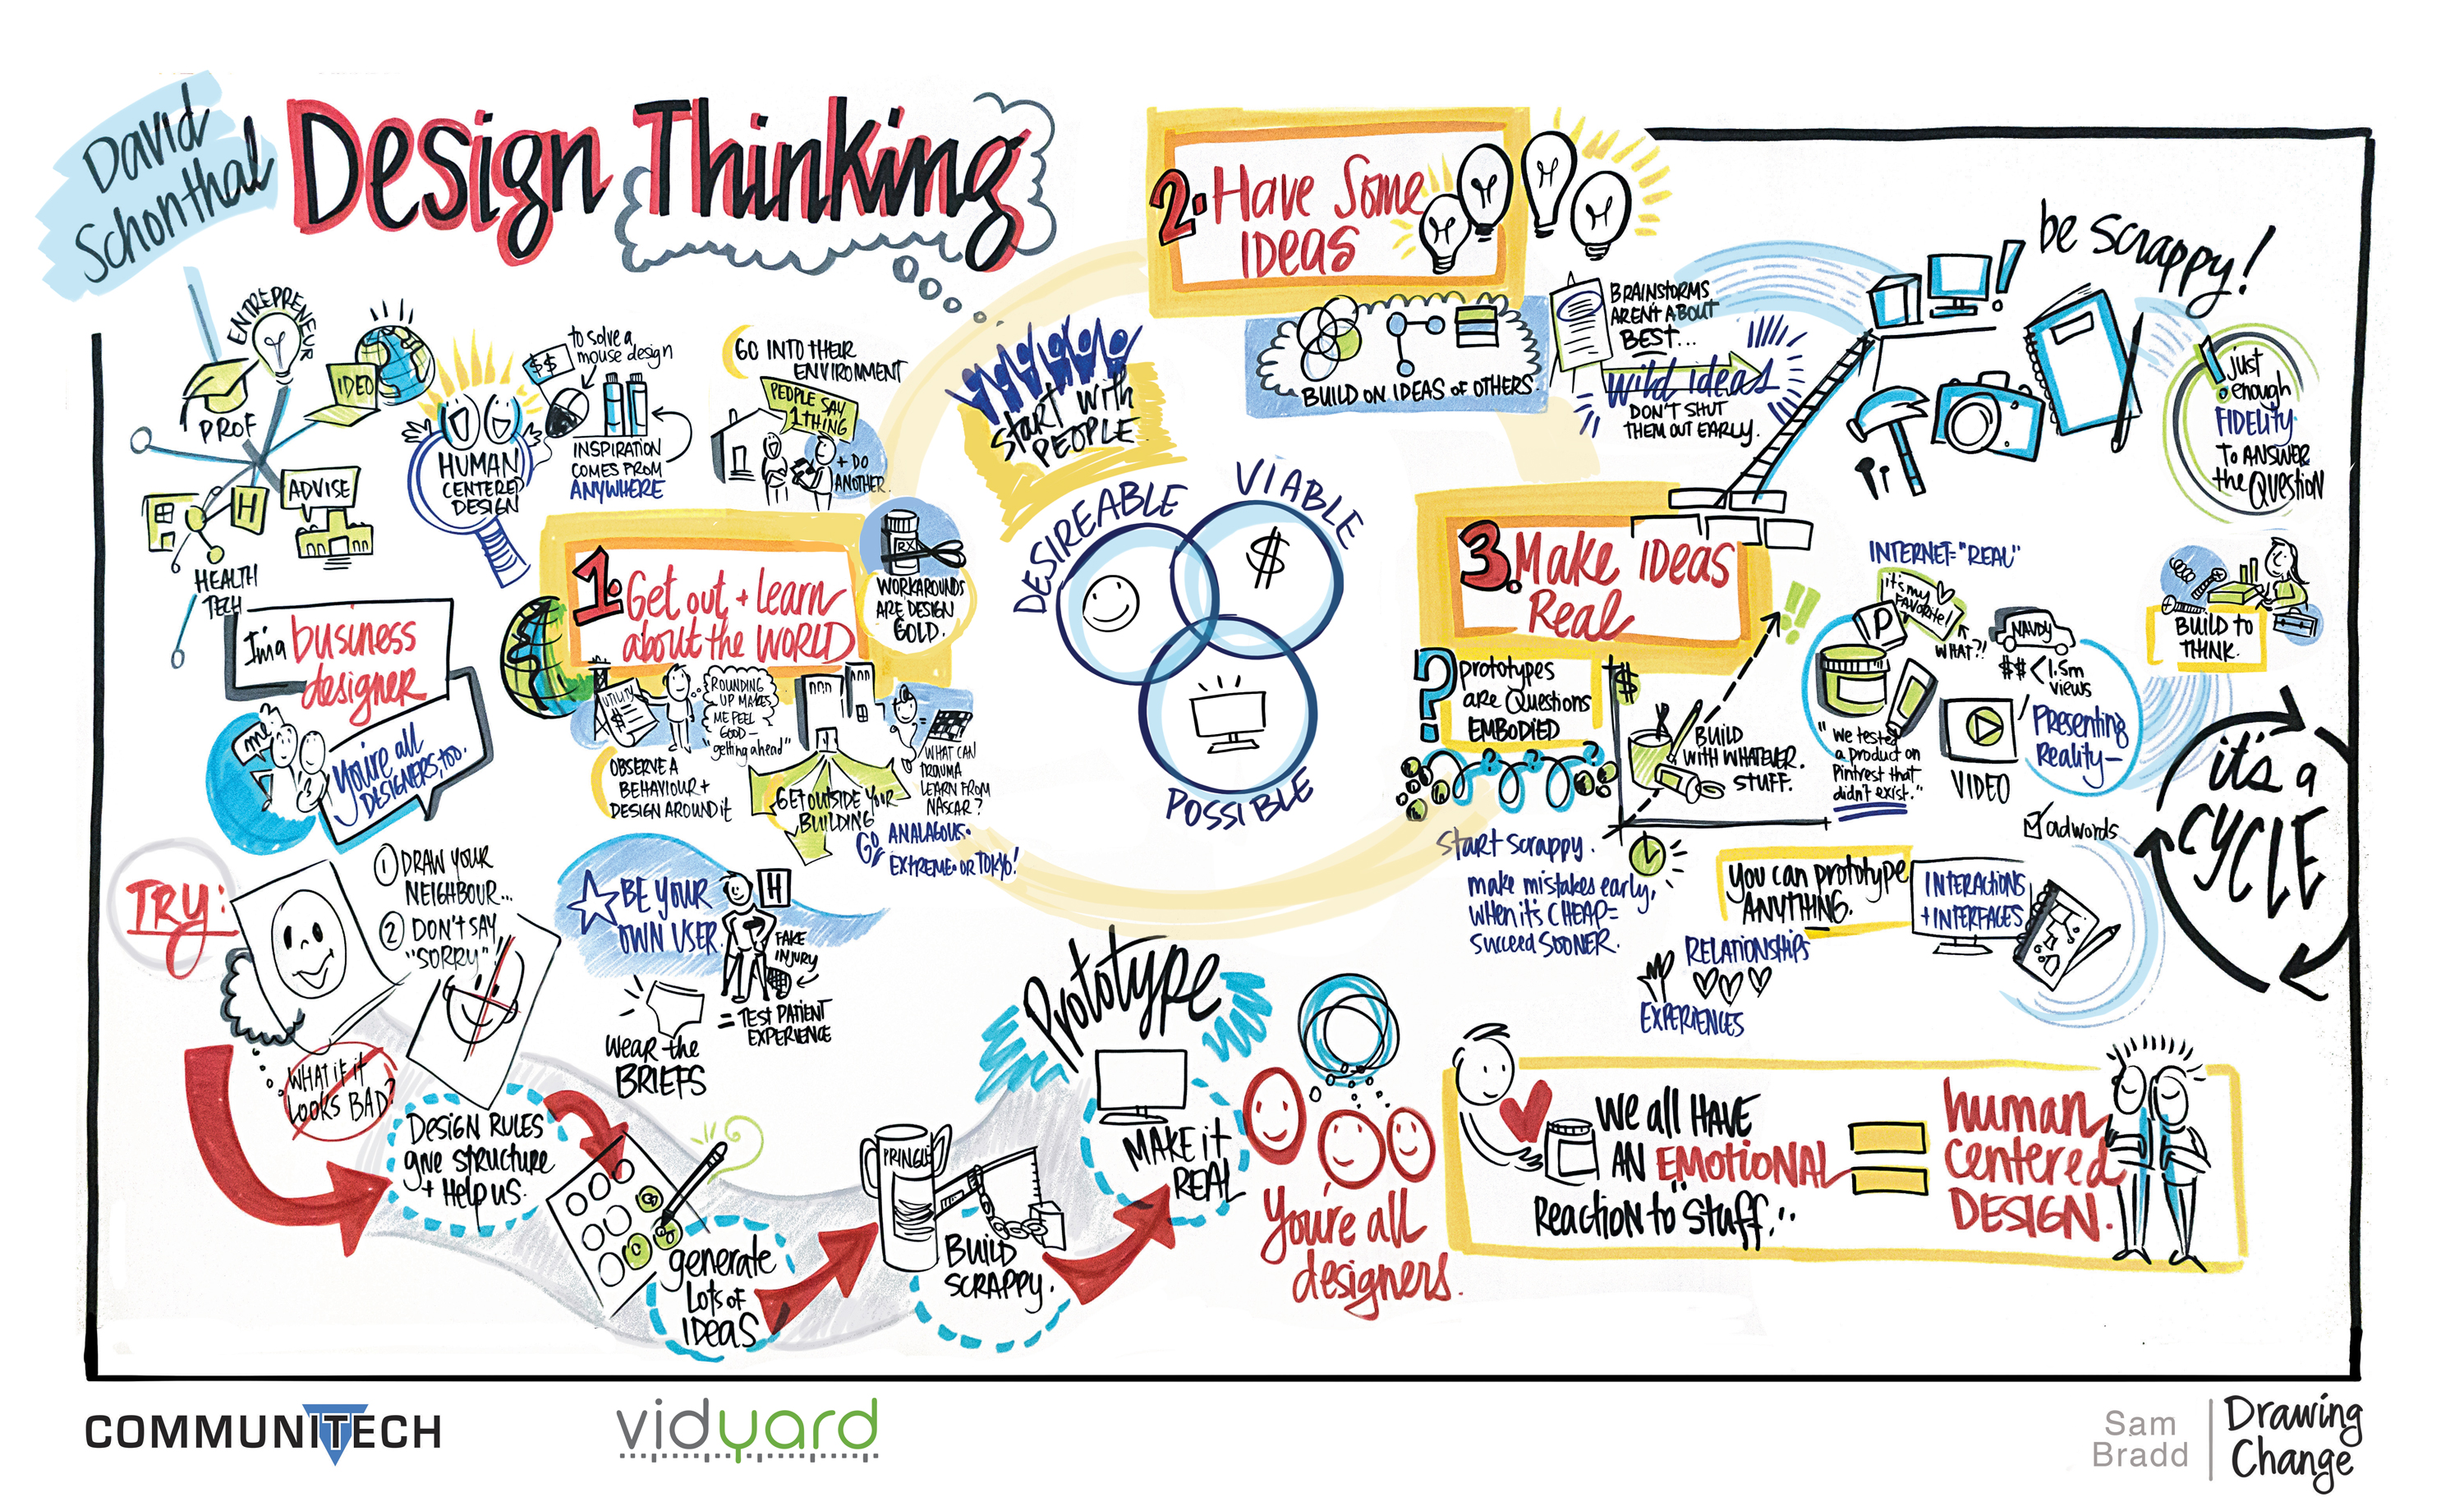 David-Schonthal graphic recording about design thinking